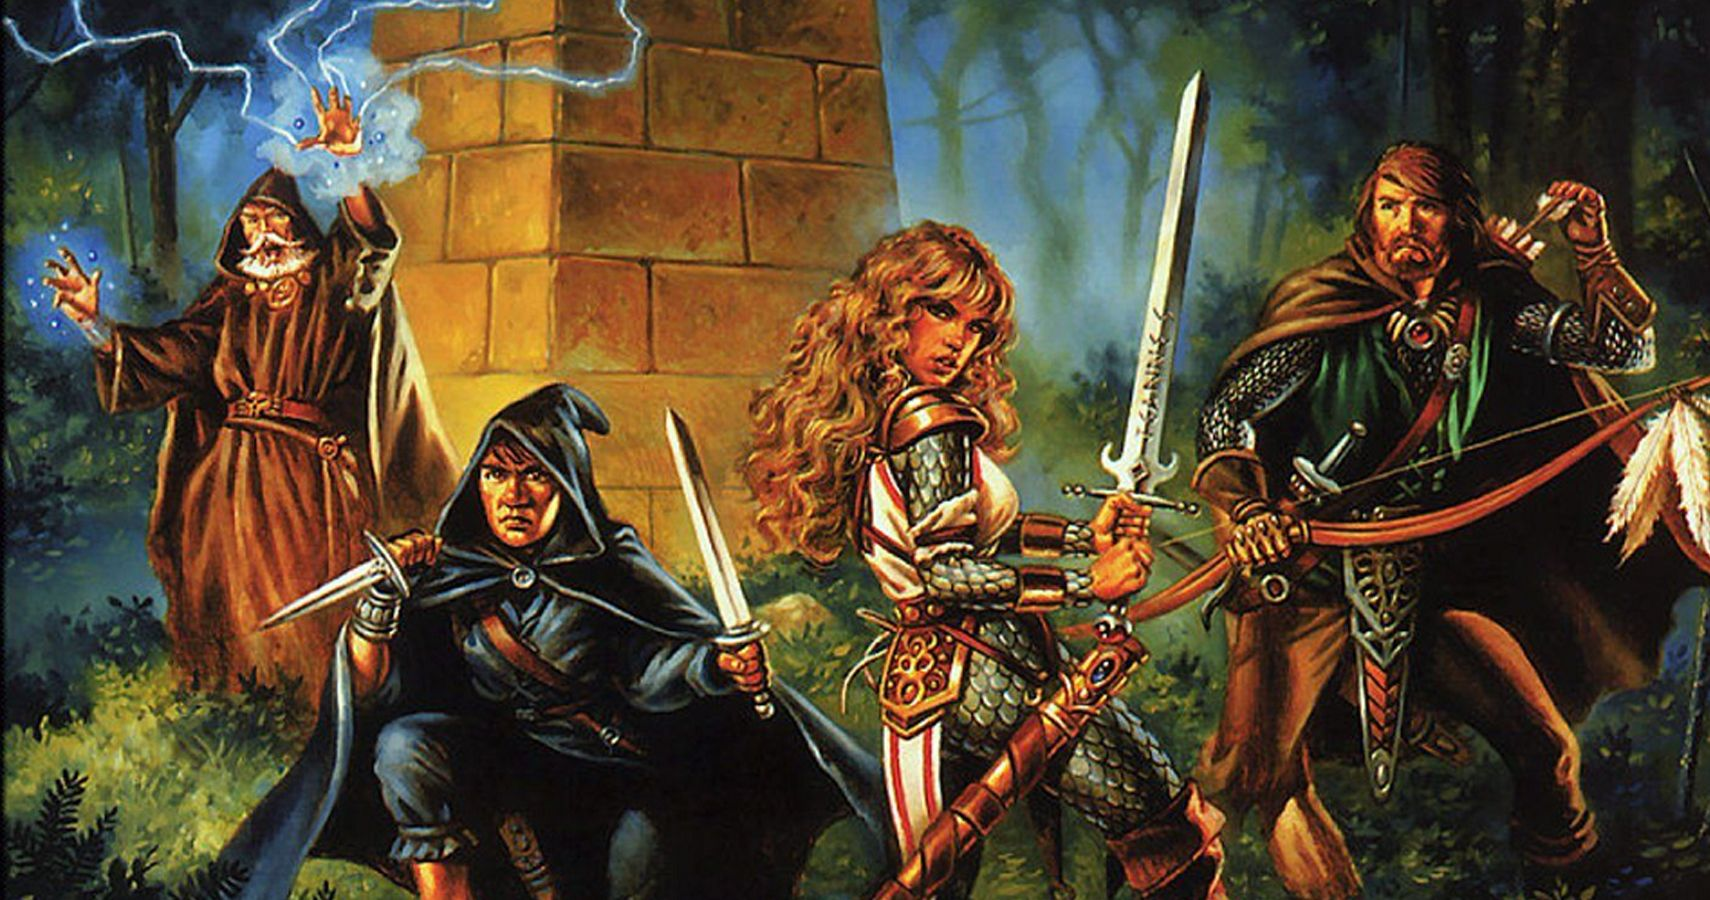 25 Epic Ways To Break Dungeons & Dragons Without Cheating